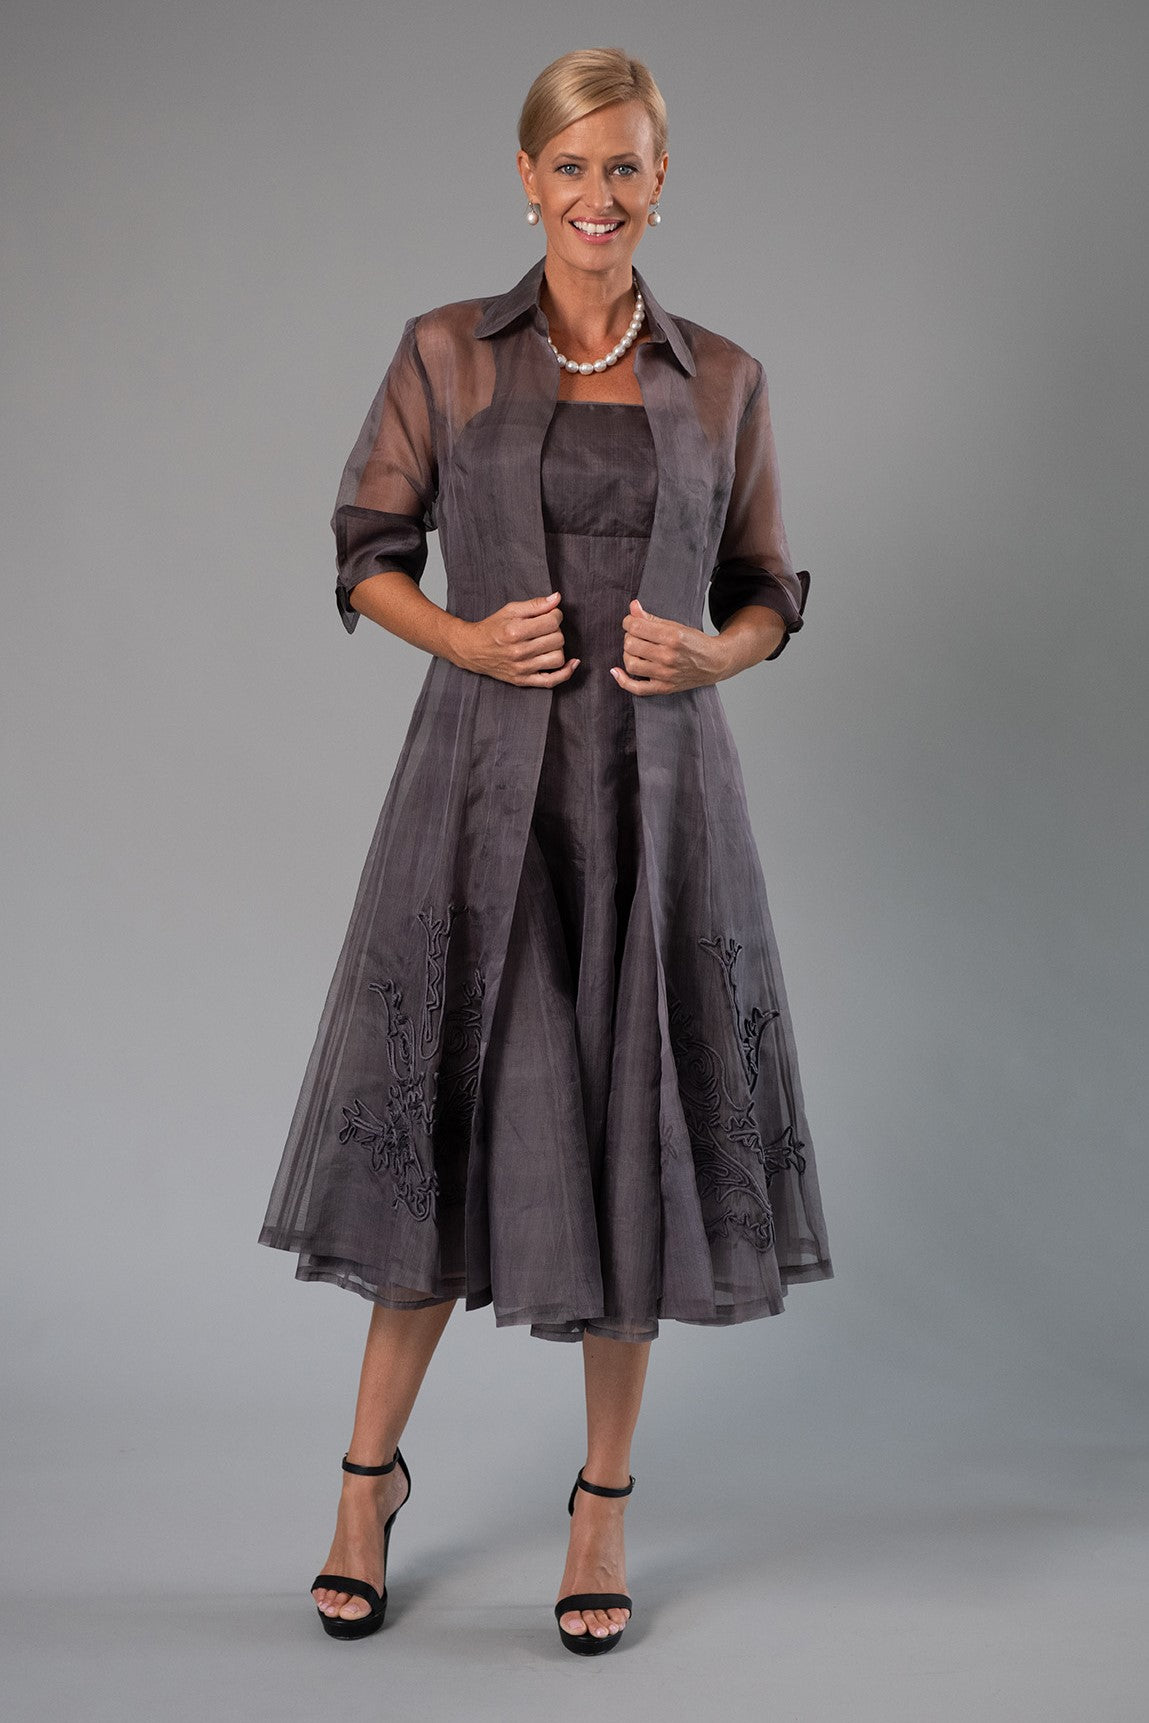 Organza Coat - Gunmetal for the Mother of the Bride / Groom